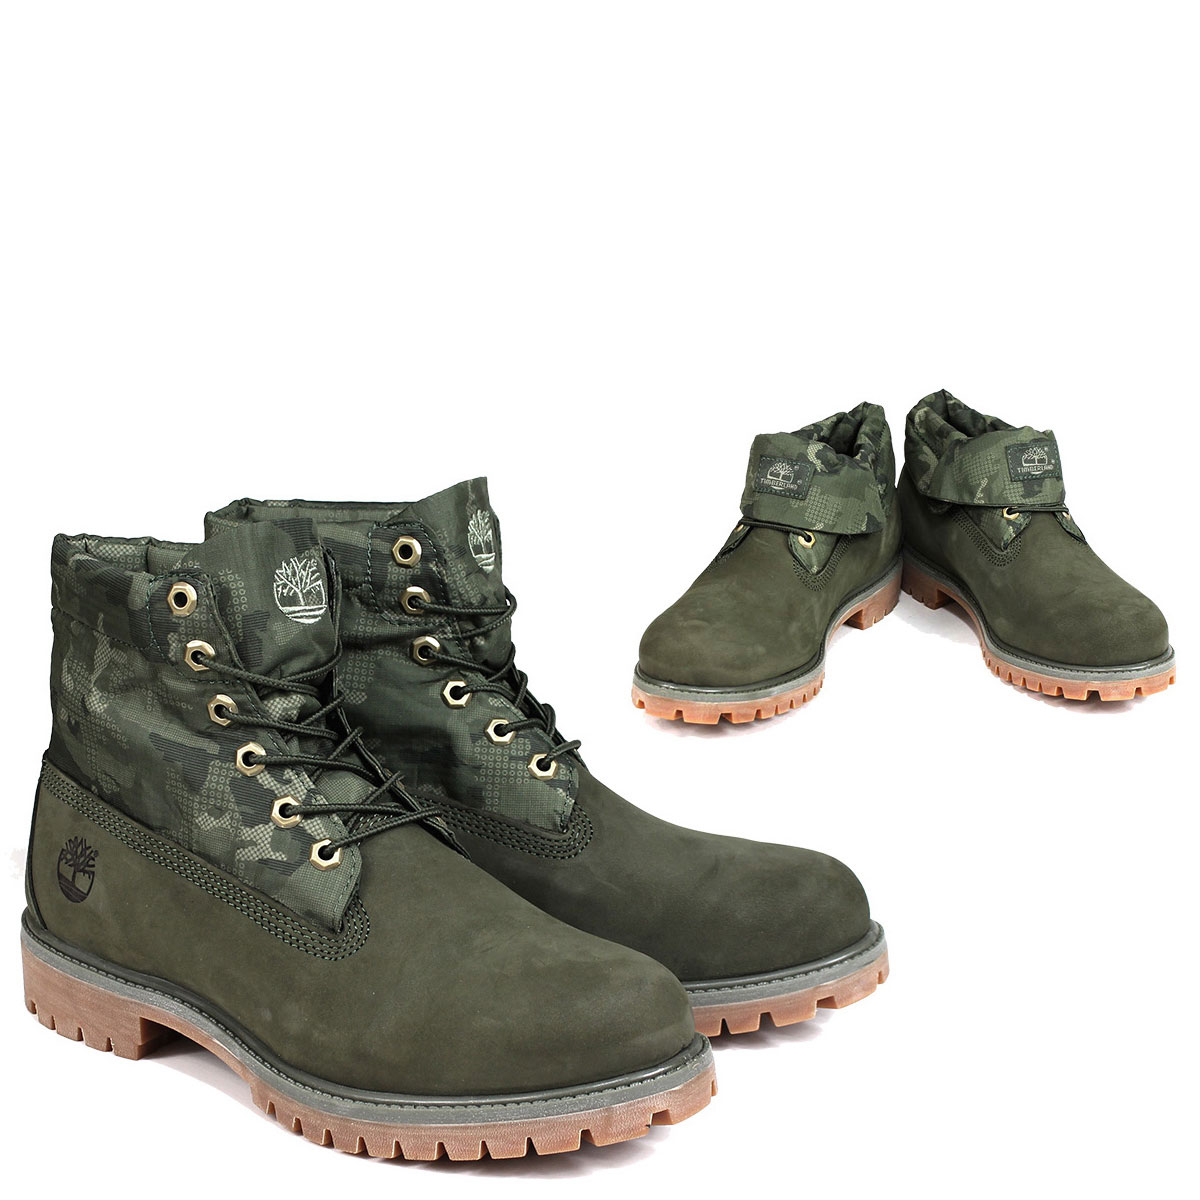 5cca3c89affb ... weekend to the casual styling in a weekday while succeeding to a  craftsman ship since I sent waterproofing boots completely near 1973 off in  the life.